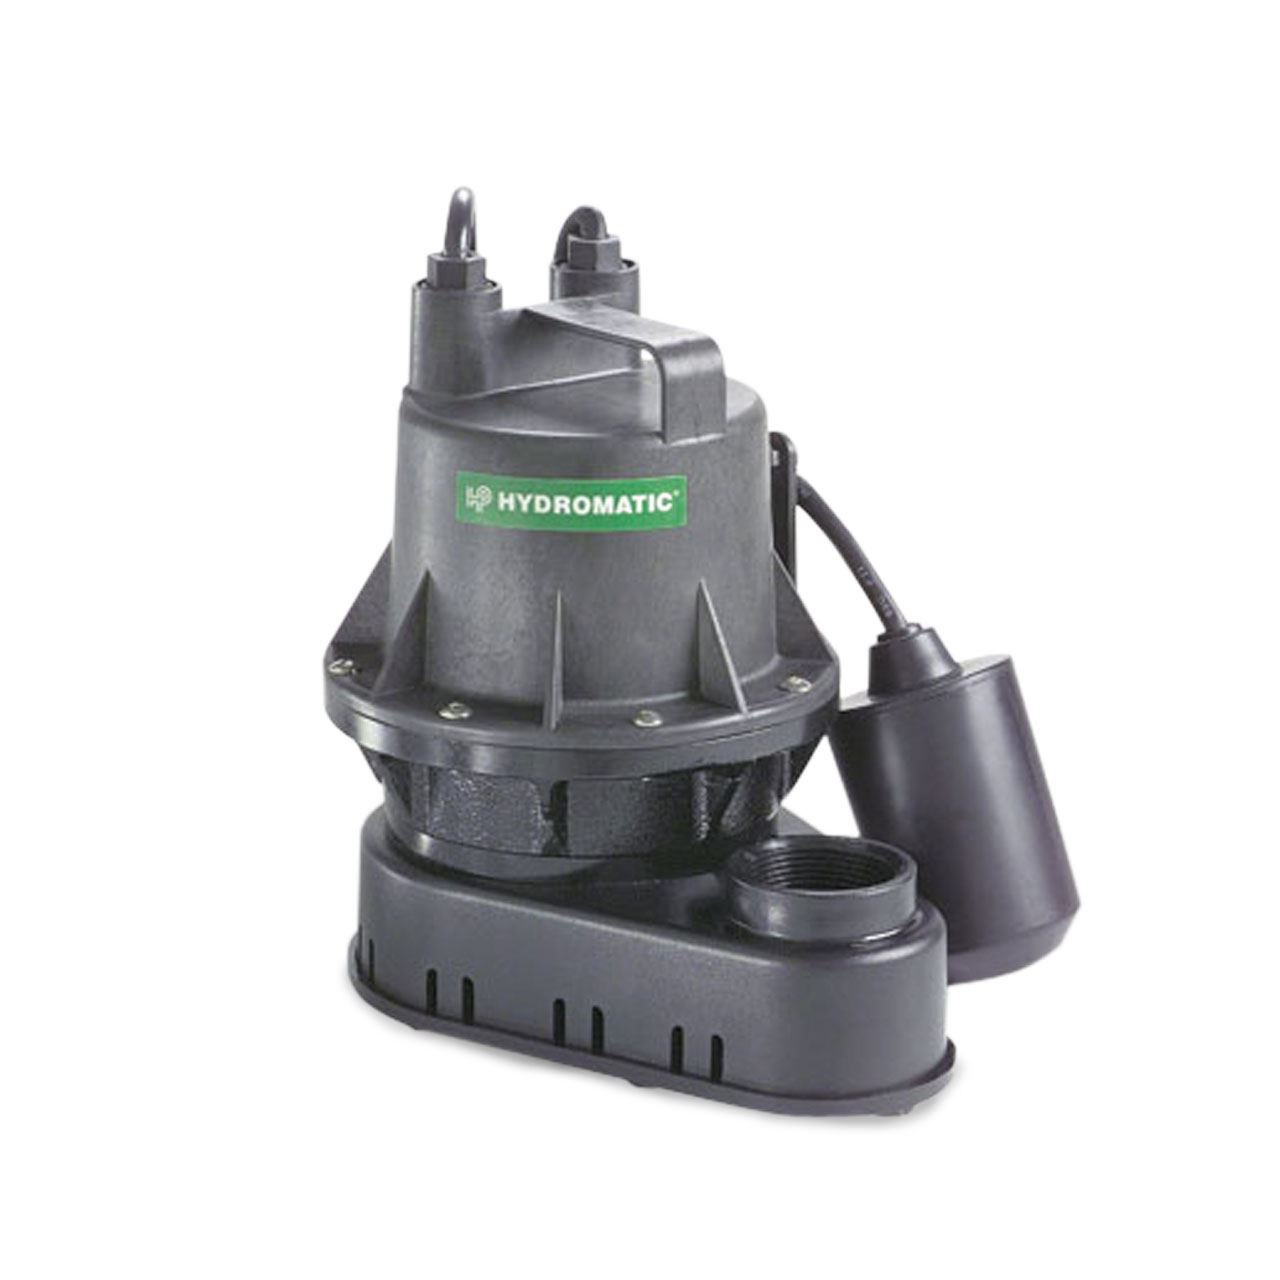 Hydromatic B-A1 Submersible Sump Pump 1/4 HP 115V 1PH Automatic 10' Cord B-A1, BA1, sump pump, Effluent pump, Hydromatic Pump, Hydromatic Effluent pump, septic pump, Hydromatic sewage pump, sump pump, sewage pump,